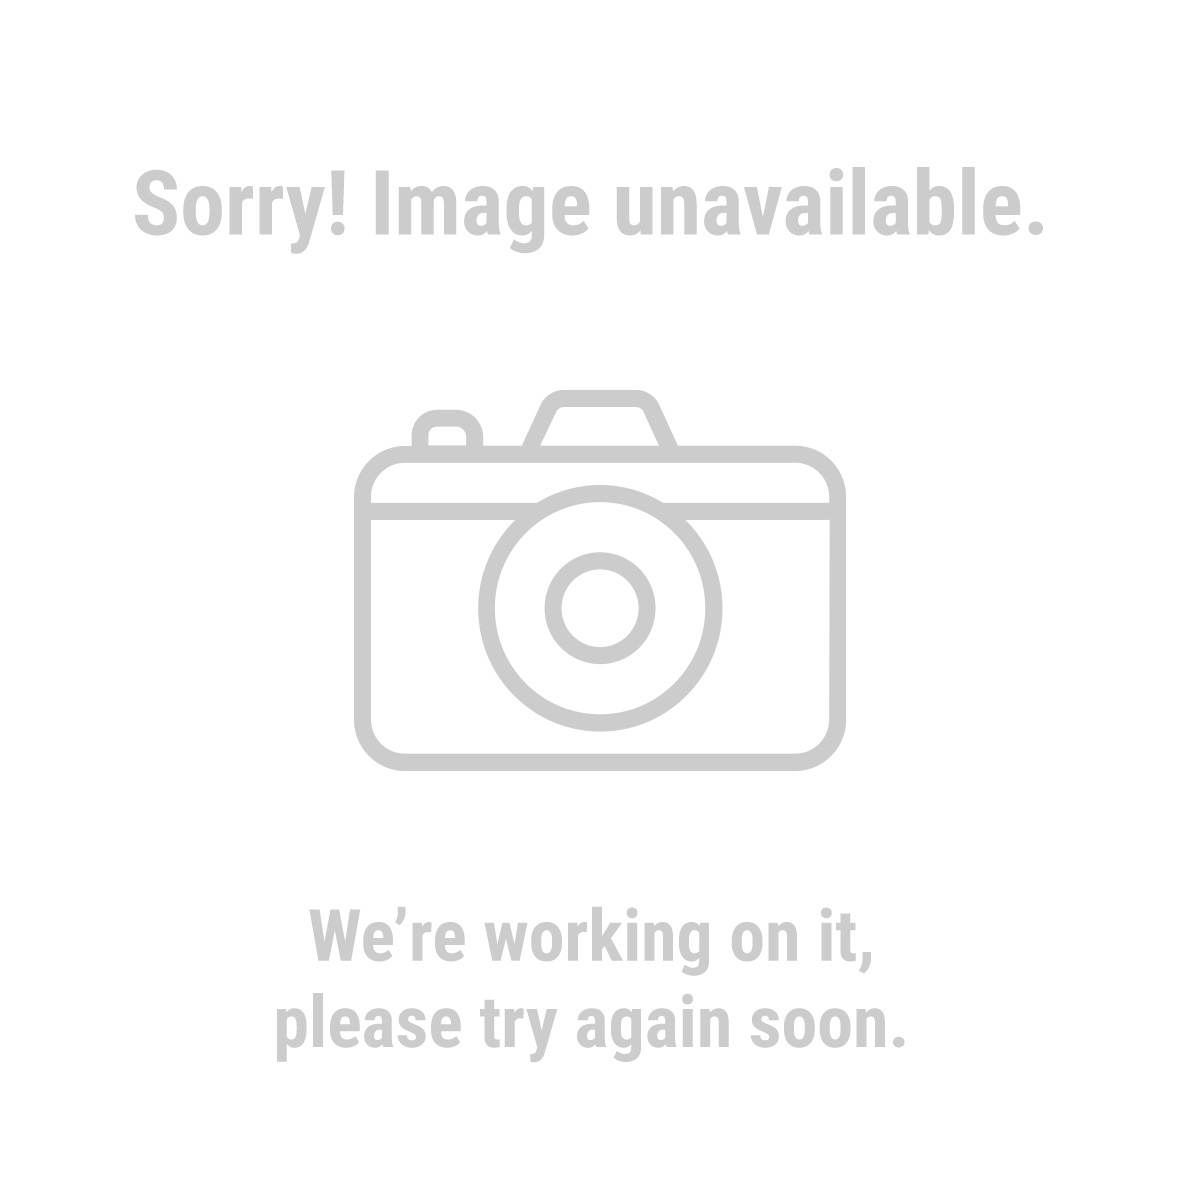 "Gordon 60367 18"" x 15"" Paper Cutter"